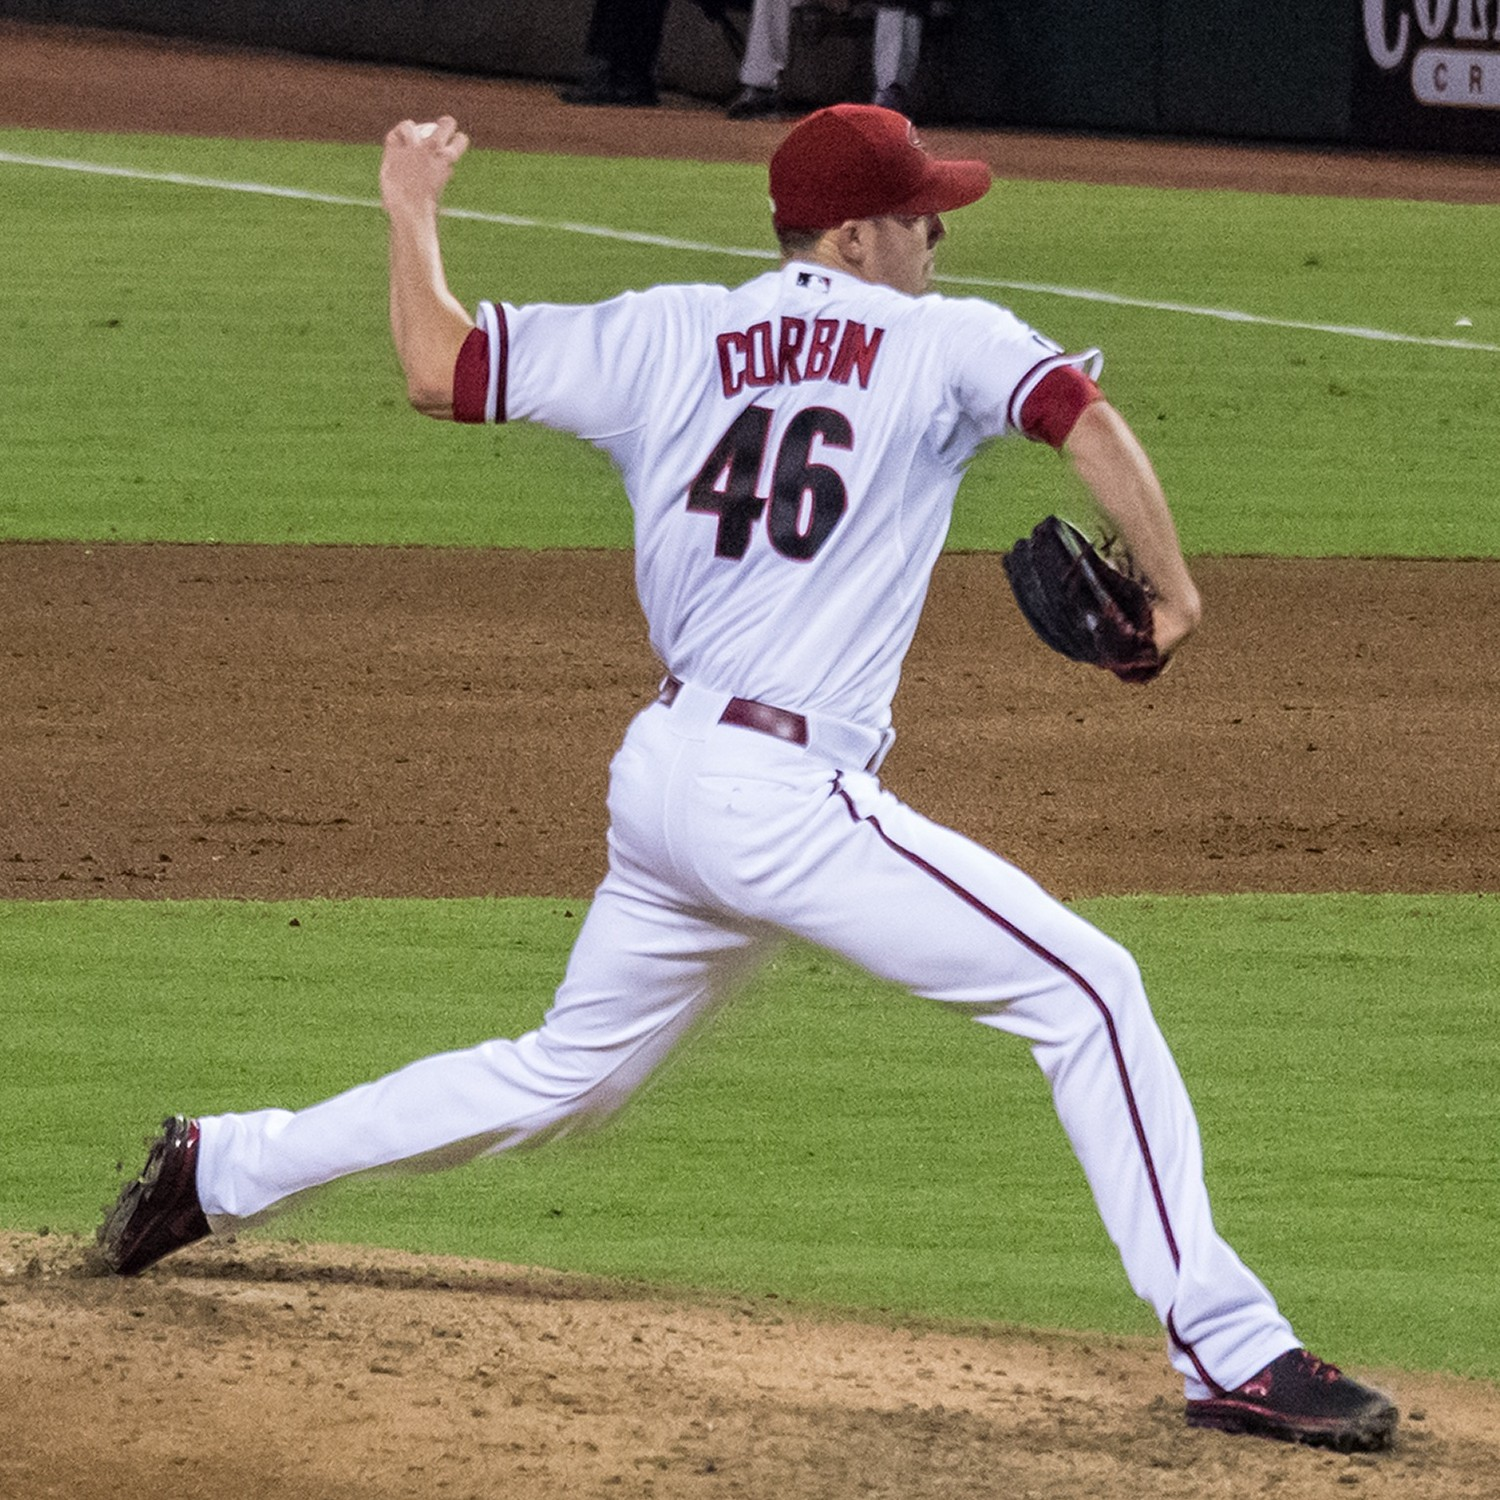 Corbin Diamondbacks MLB STATS REPORT